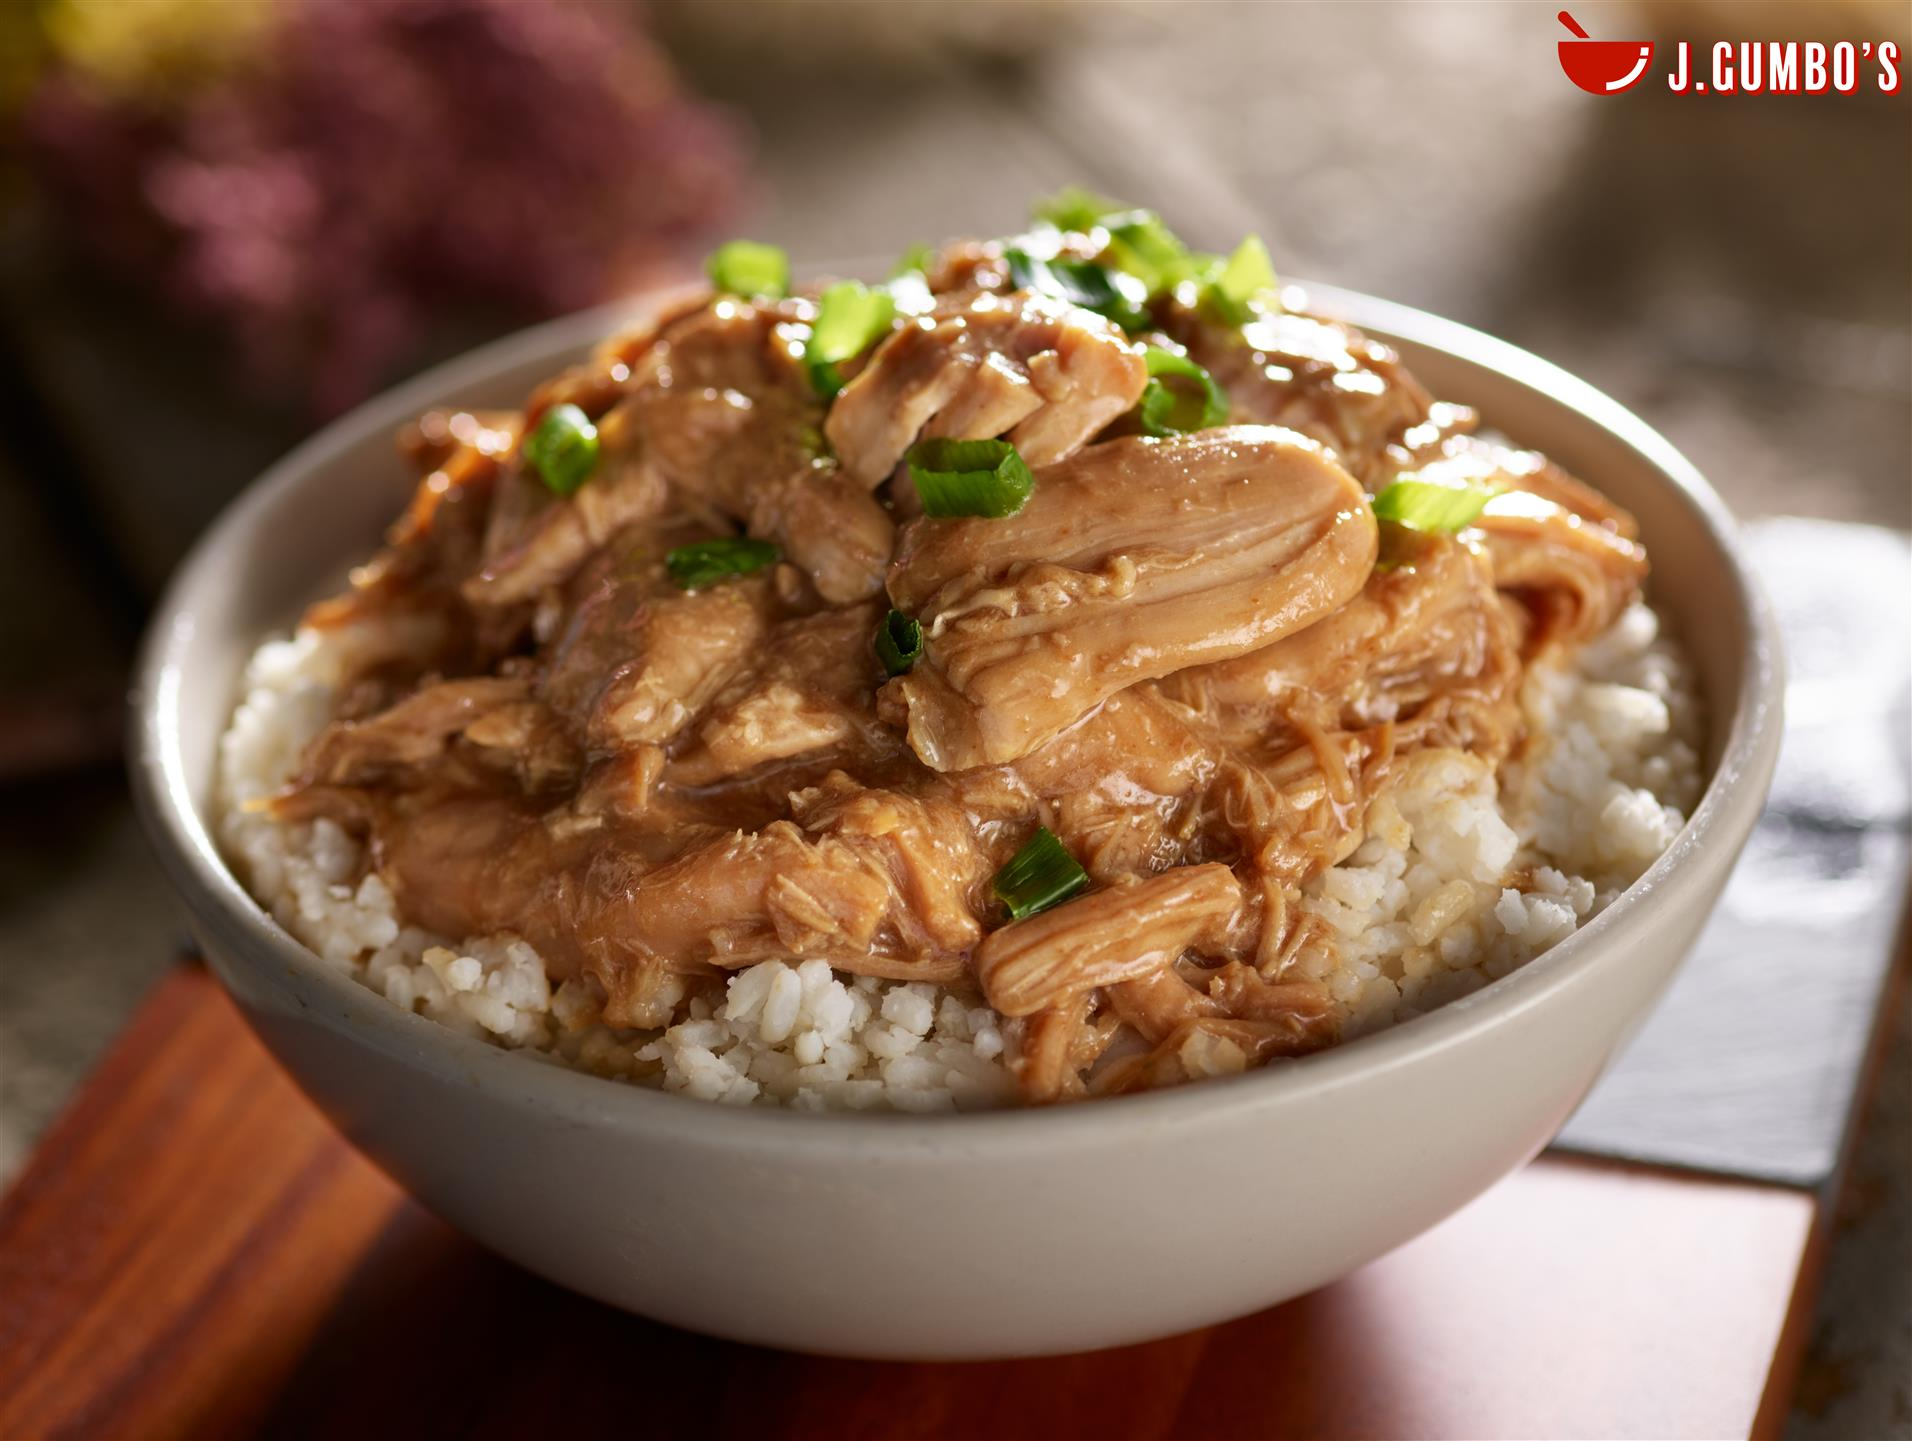 Bourbon Street Chicken: Tender Chicken Slow-Cooked In A Lightly Sweet Hoisin Sauce (On The Mild Side)